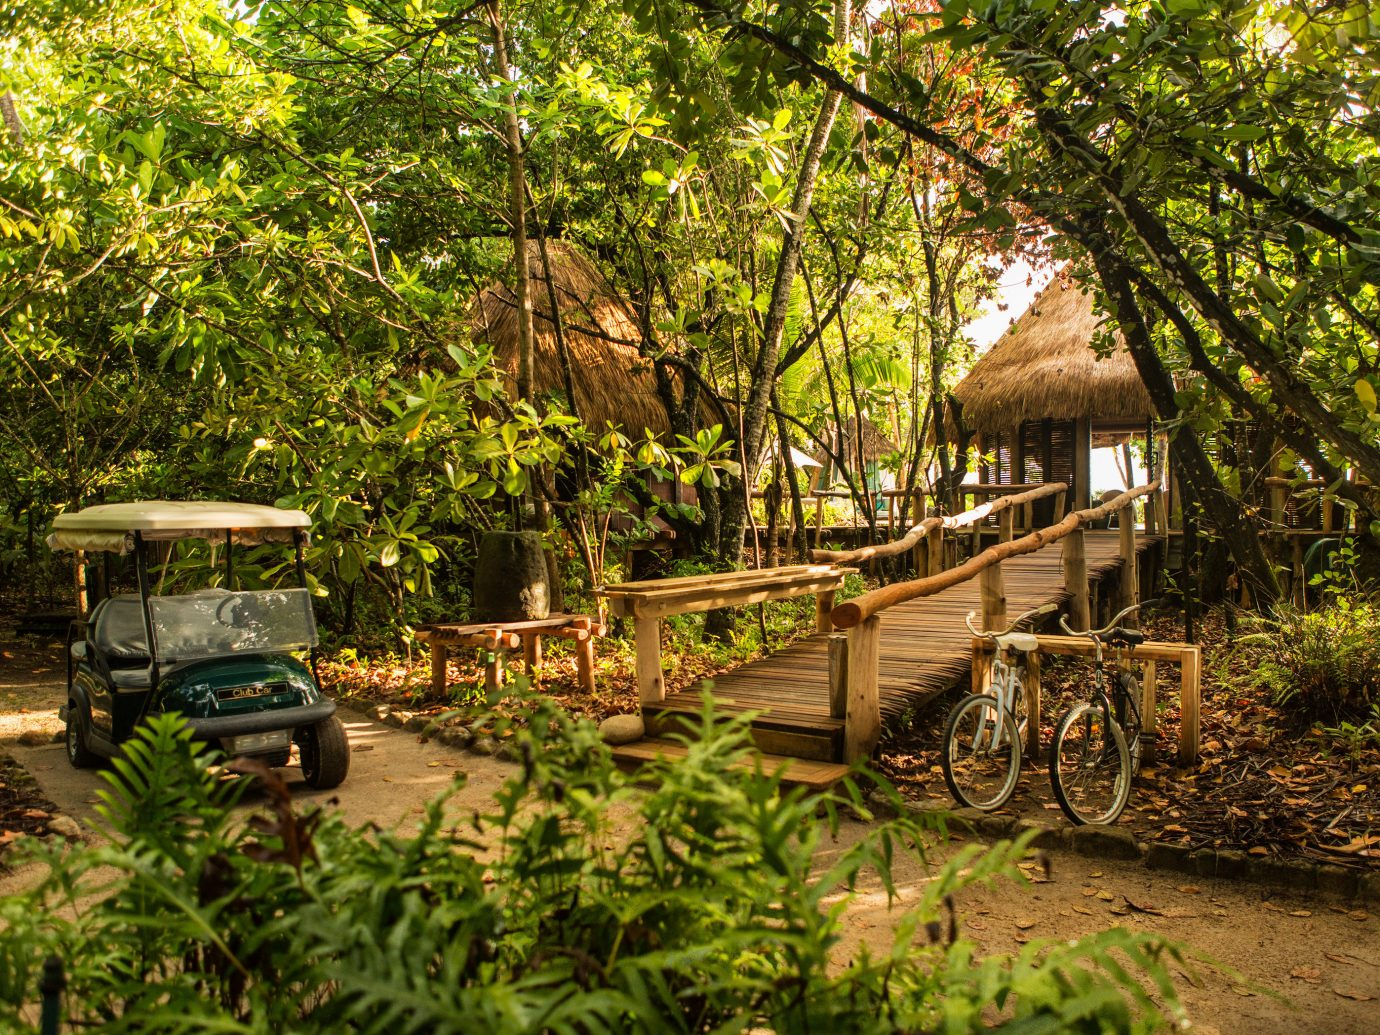 Luxury Travel Trip Ideas tree outdoor vegetation plant nature reserve building Jungle arecales rainforest leaf real estate palm tree Forest landscape outdoor structure woodland cottage Resort water leisure house walkway area shade lined Garden wooded